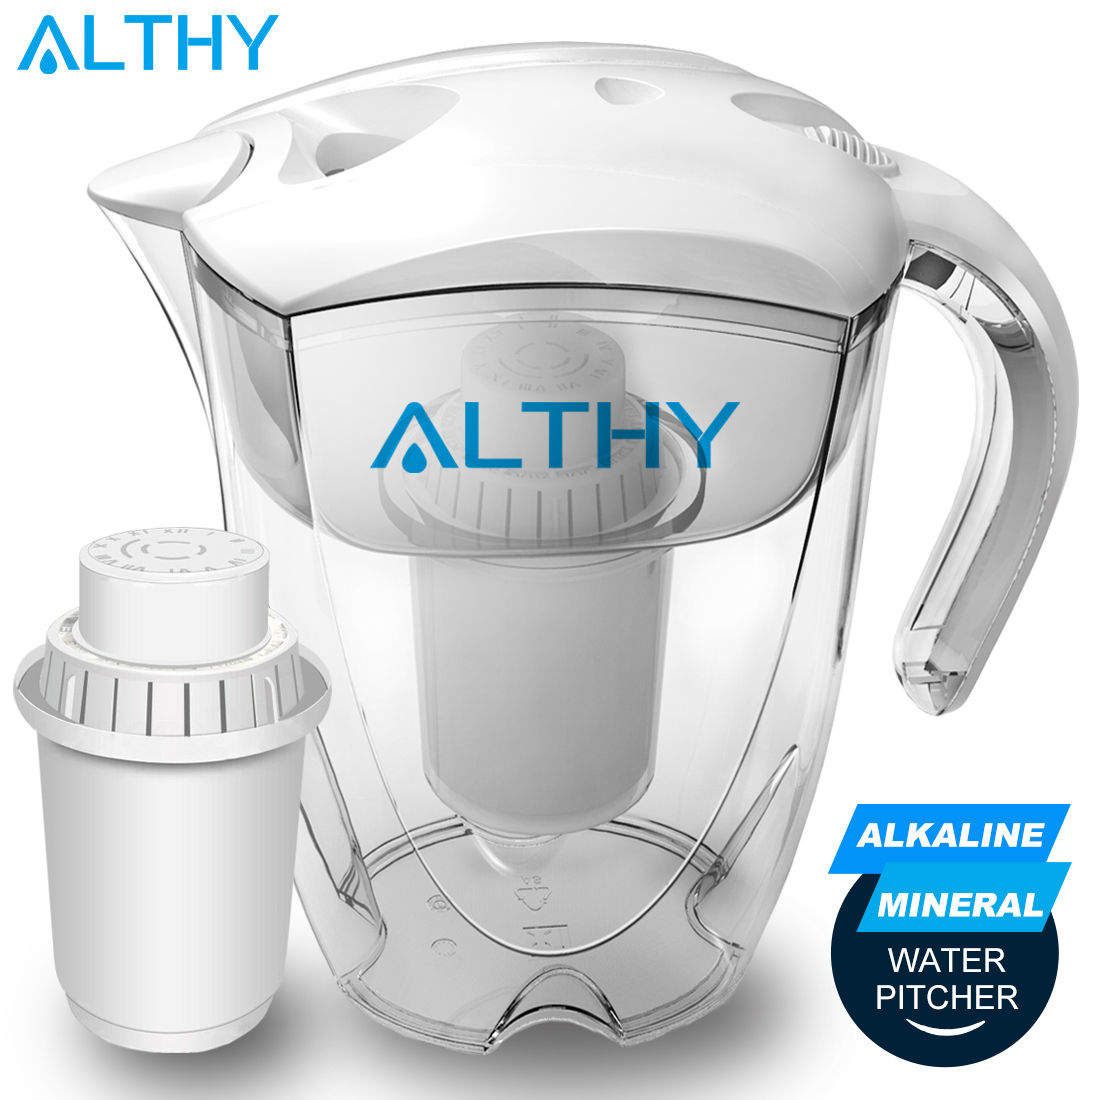 ALTHY 3.5L Mineral Alkaline Water Pitcher Filter Ionizer - 400L Long-Life Filters - Purifier Filtration System - PH Alkalizer